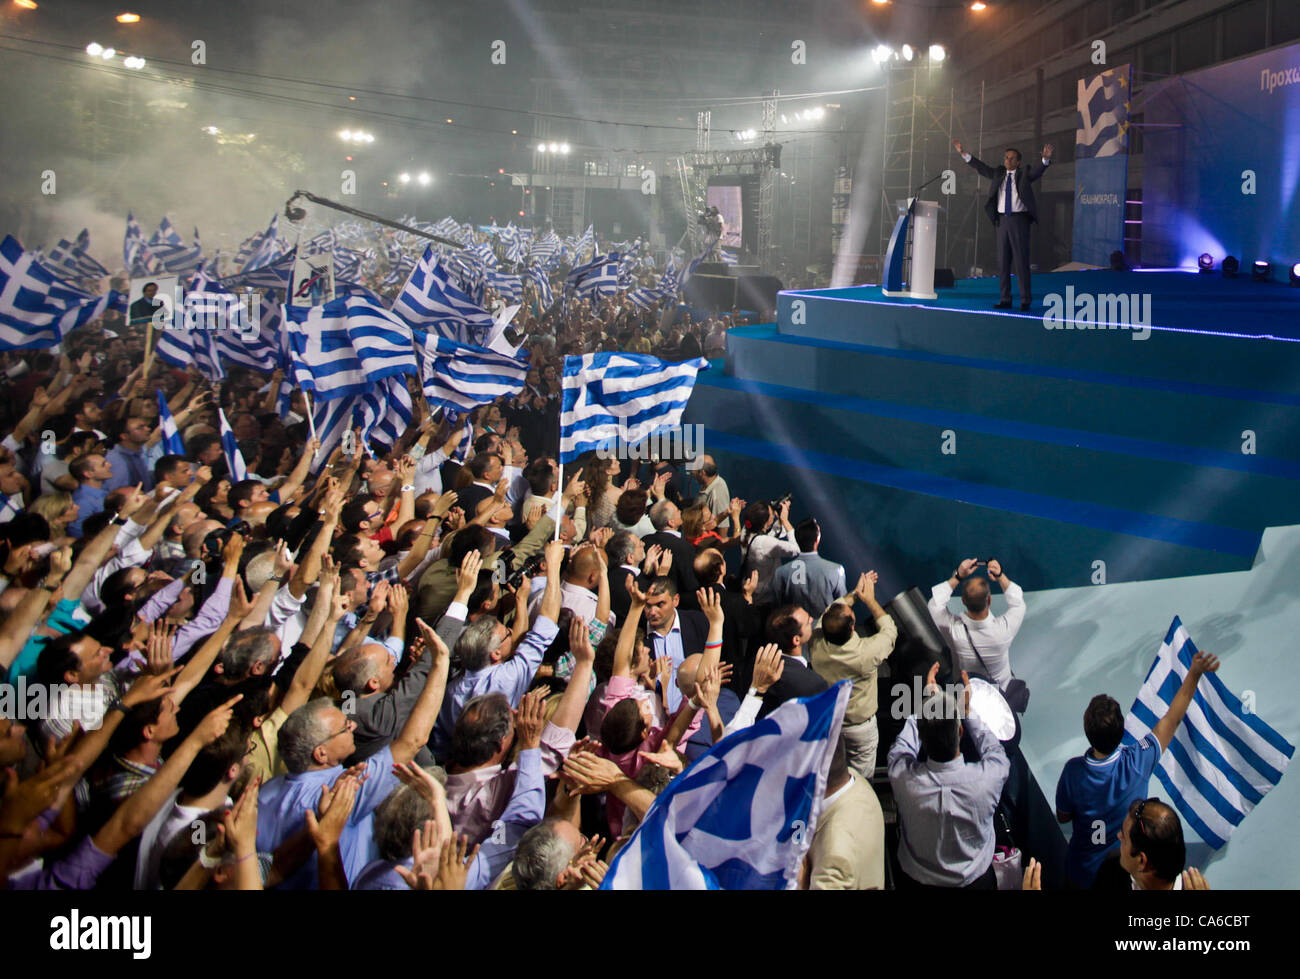 June 15, 2012 - Athens, Greece - Conservative New Democracy leader ANTONIS SAMARAS delivers a speech in front of Stock Photo